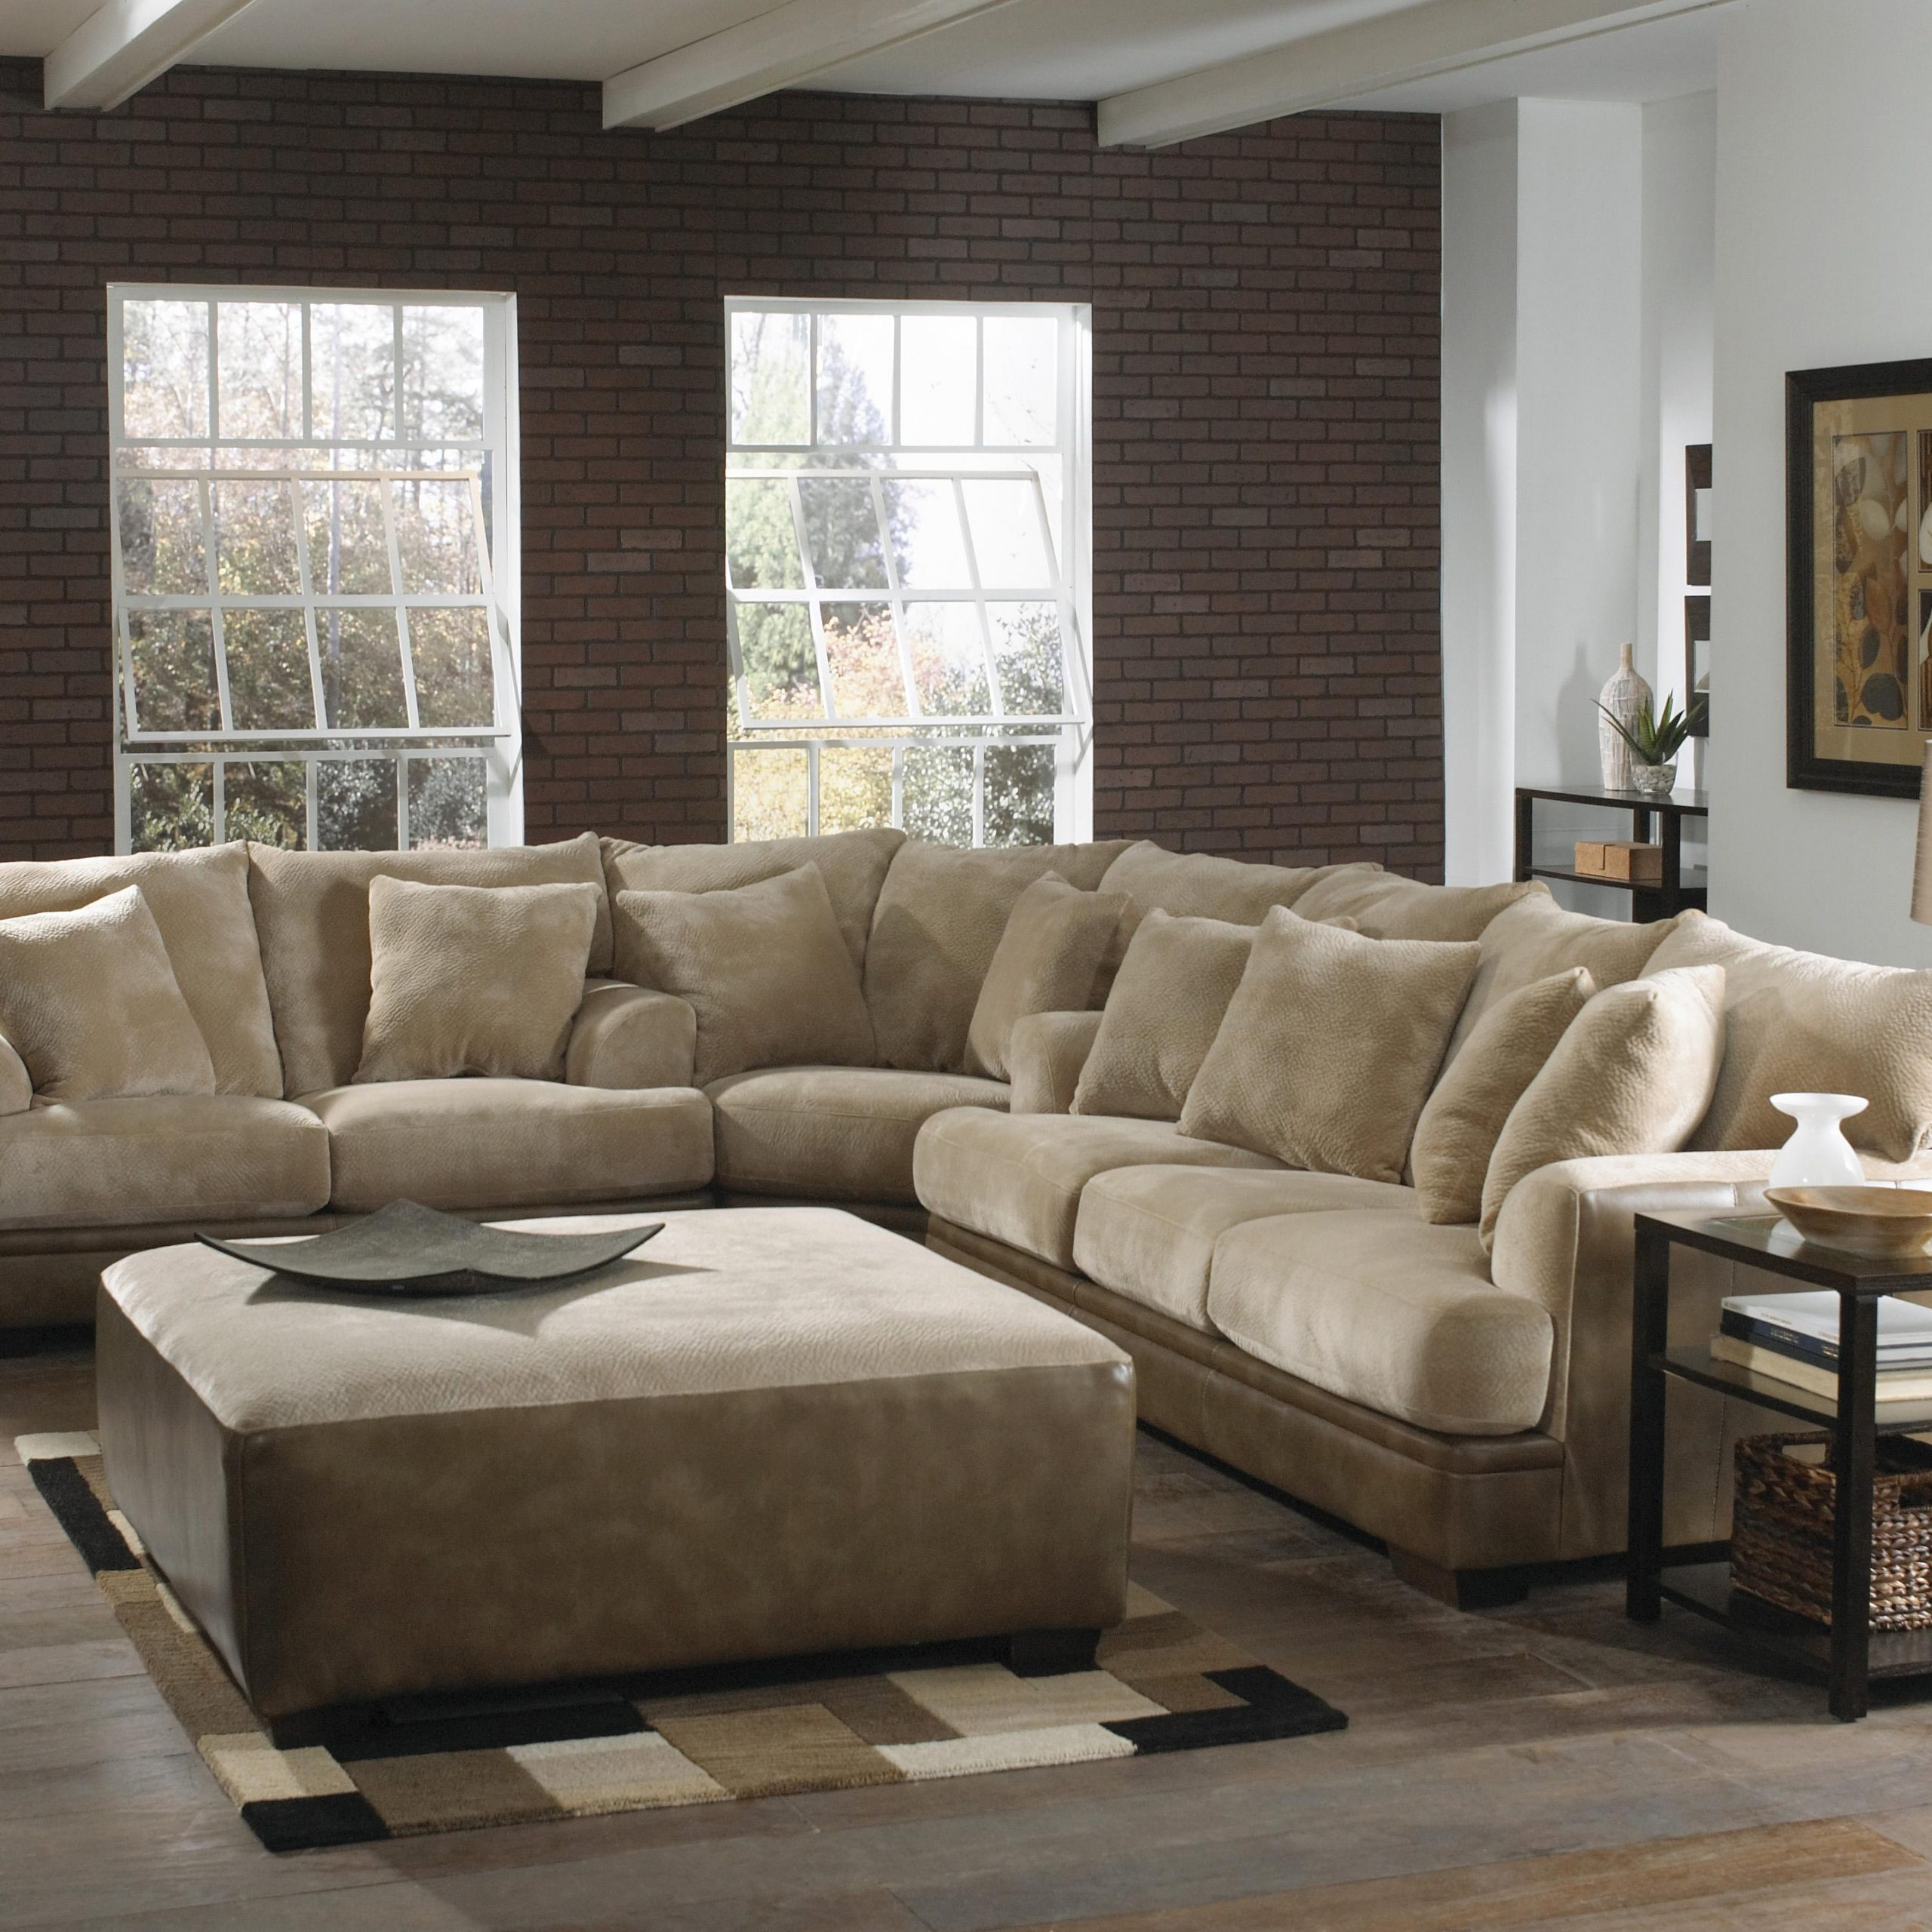 Large L Shaped Sectional Sofa With Left Side Loveseat Pertaining To Wide Sofa Chairs (View 10 of 15)